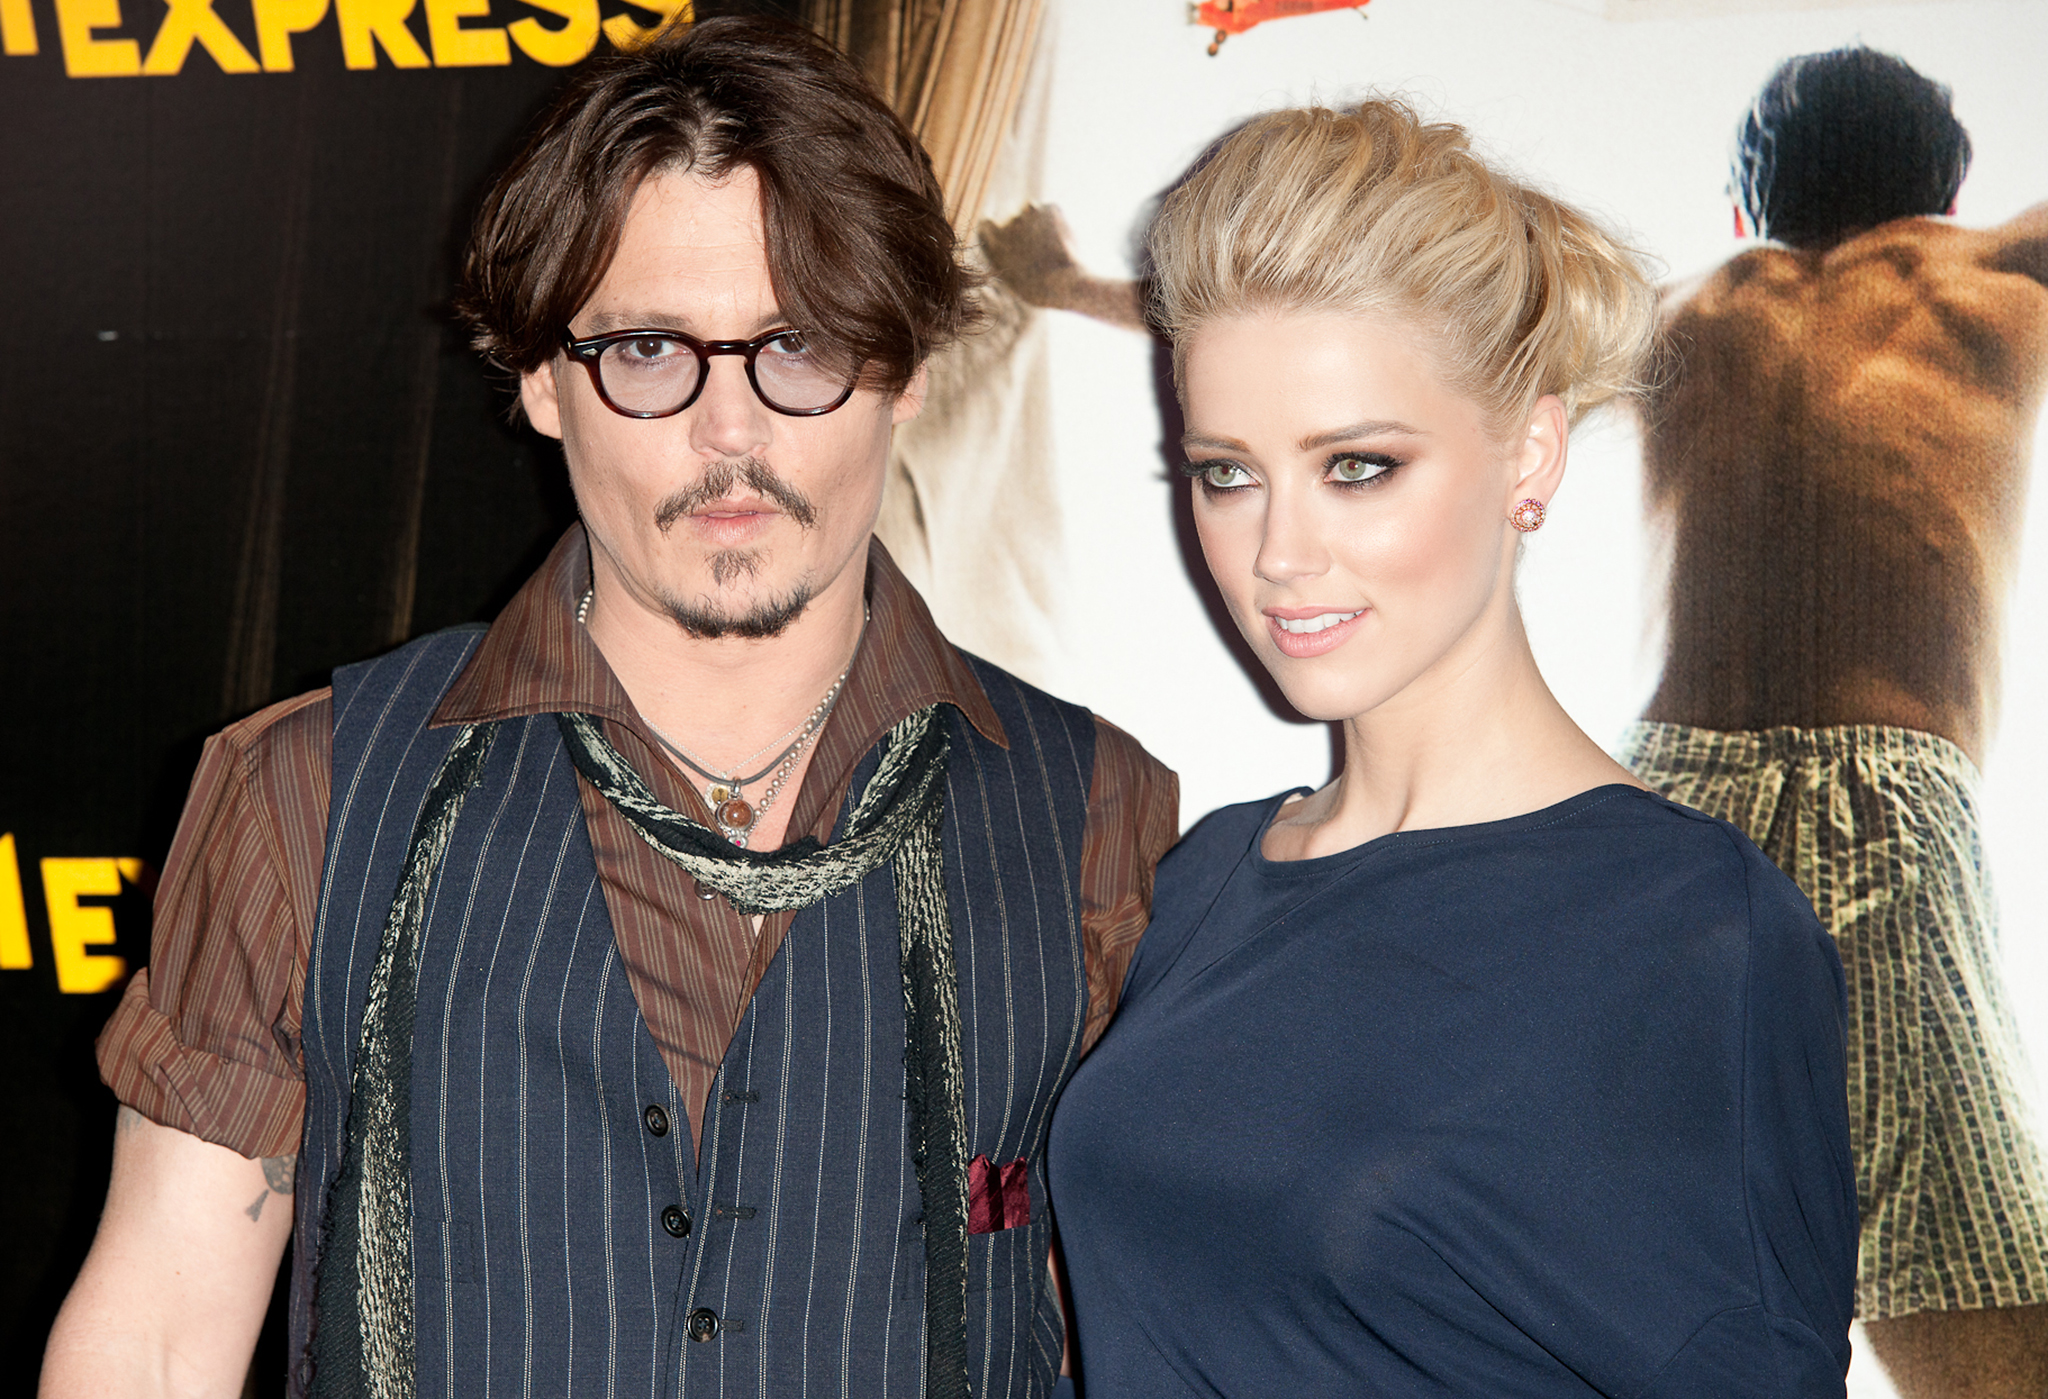 Johnny Depp and Amber Heard back where it all started, at a 'Rum Diary' premiere in 2011 (WireImage)